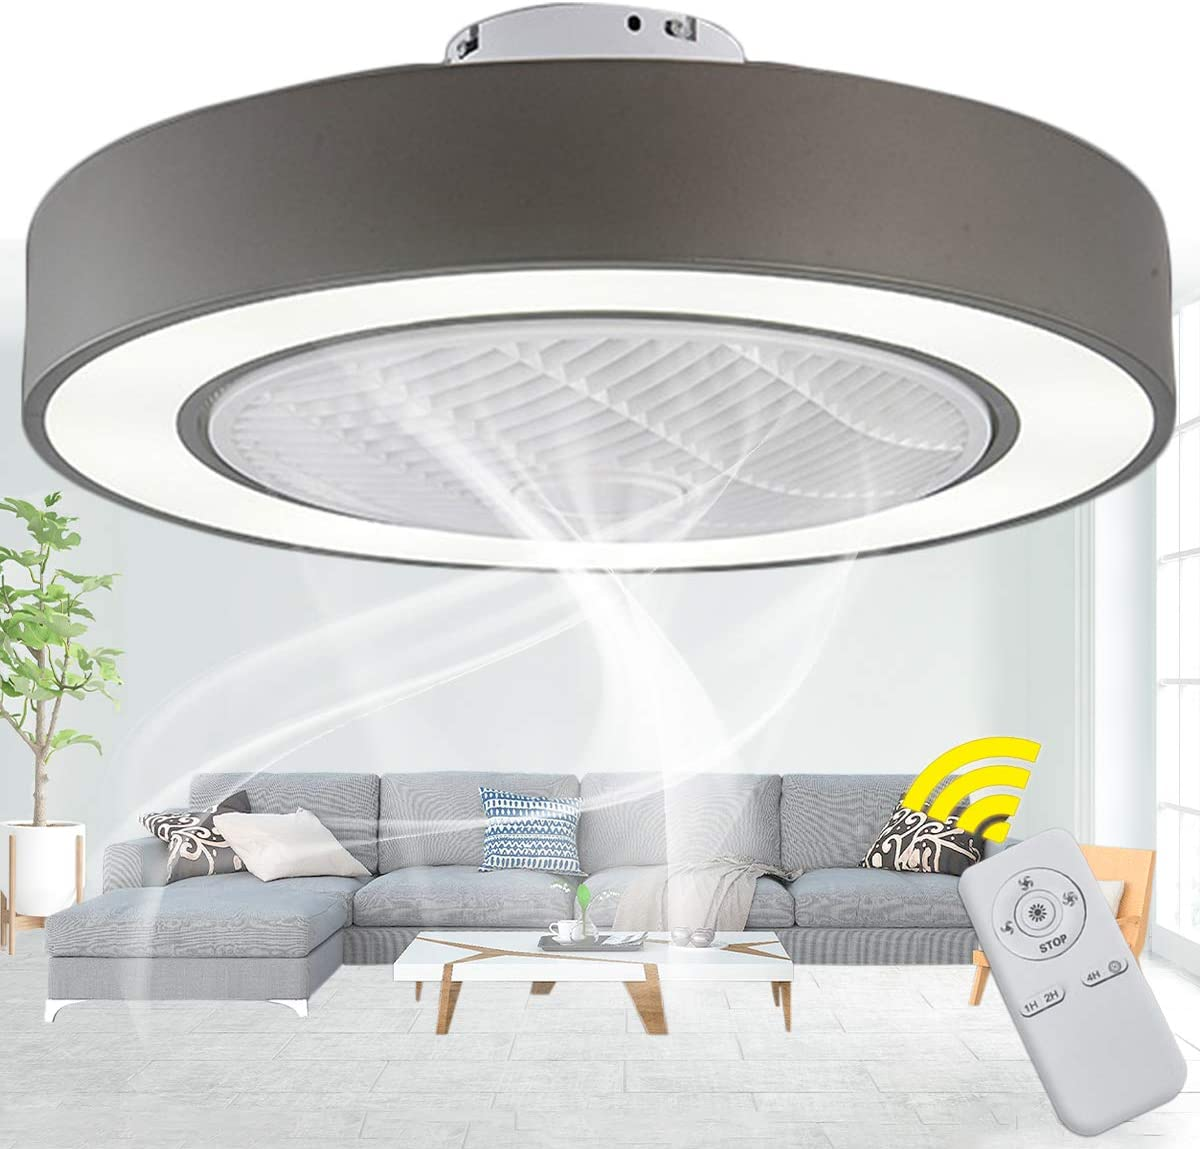 Amazon Com Invisible Ceiling Fan With Light Remote Control Dimmable 3 Speed Led Low Profile Semi Ceiling Lamp Timing Bedroom Dining Living Room Kitchen Dining